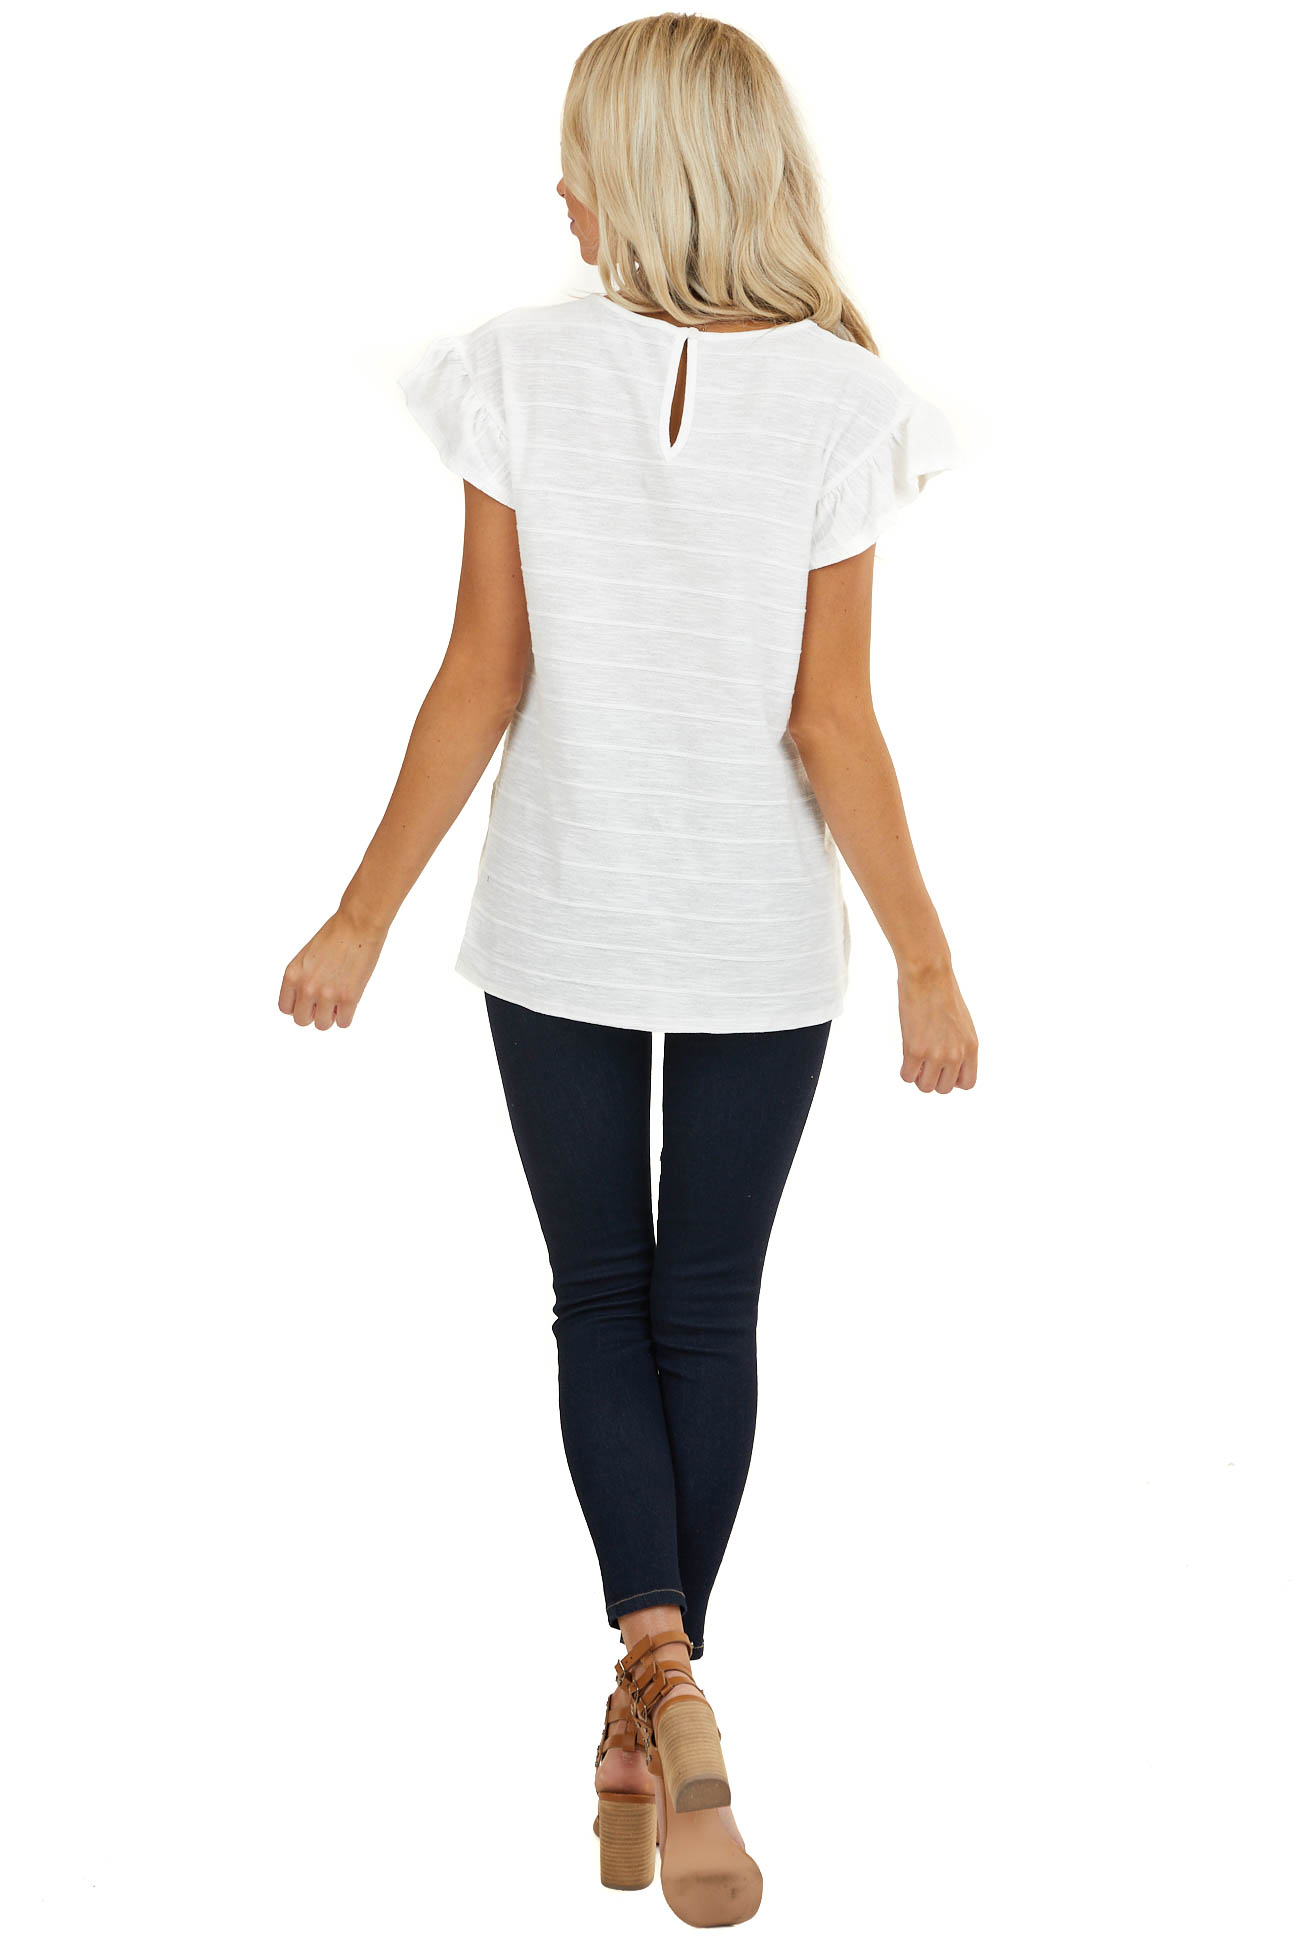 Off White Textured Woven Top with Short Ruffled Sleeves